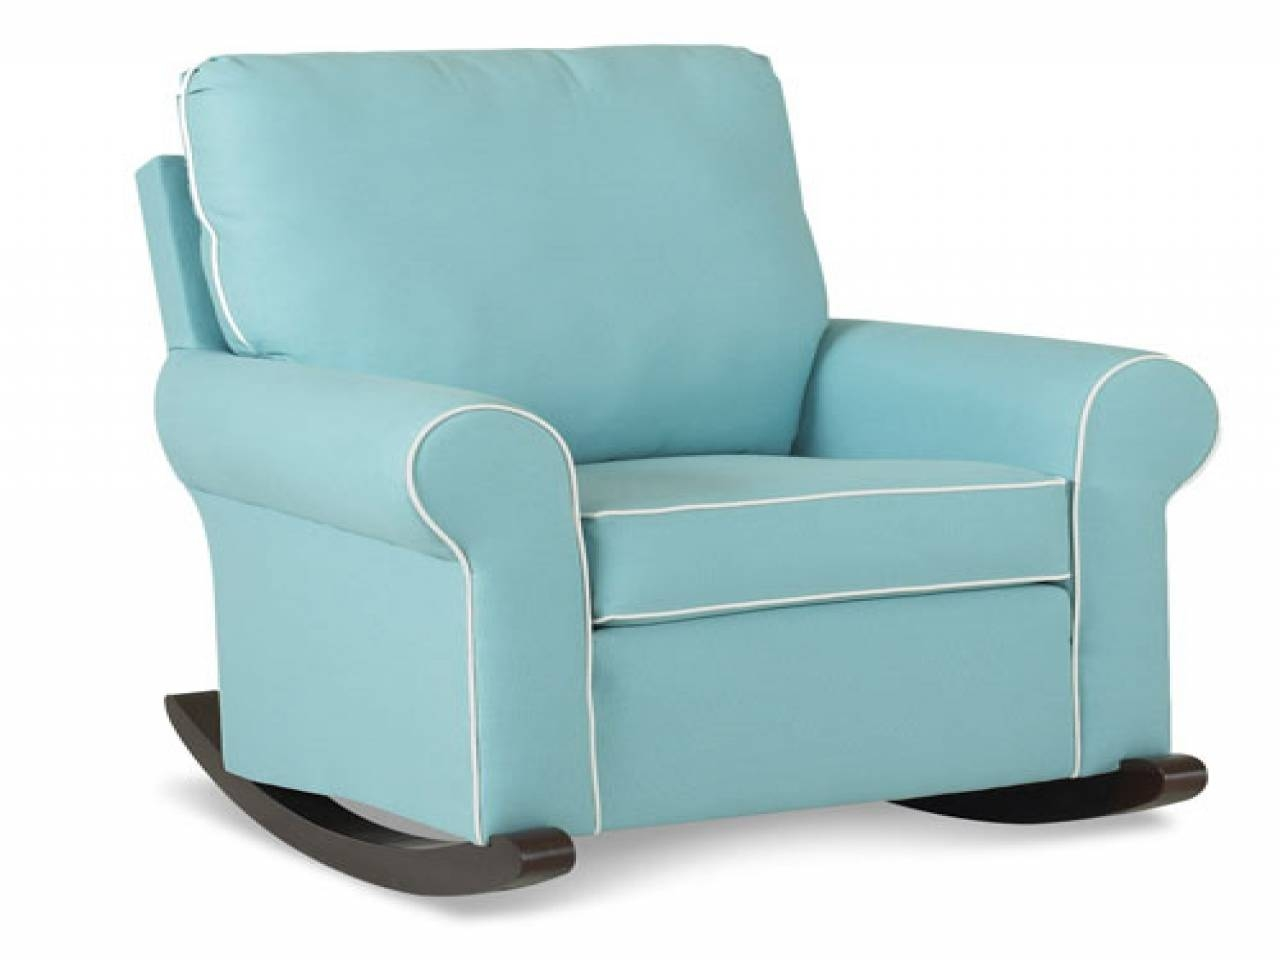 Sofa Baby Rocking Chairs Modern For Nursery Chair Concept | Tugrahan in Sofa Rocking Chairs (Image 19 of 30)